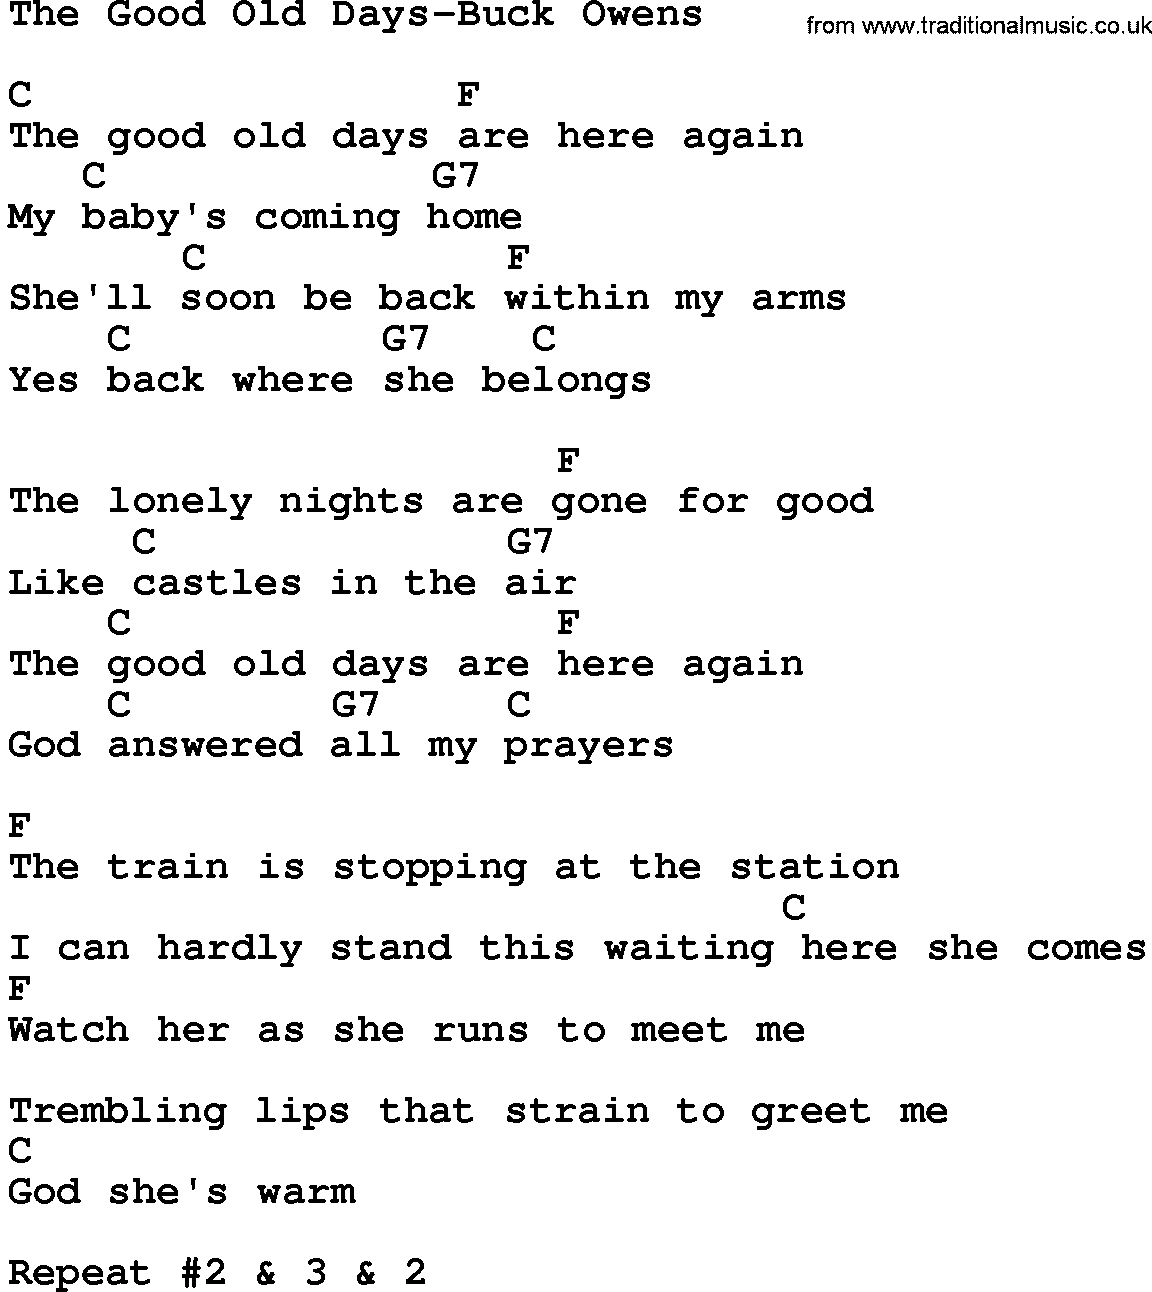 Country Music Song: The Good Old